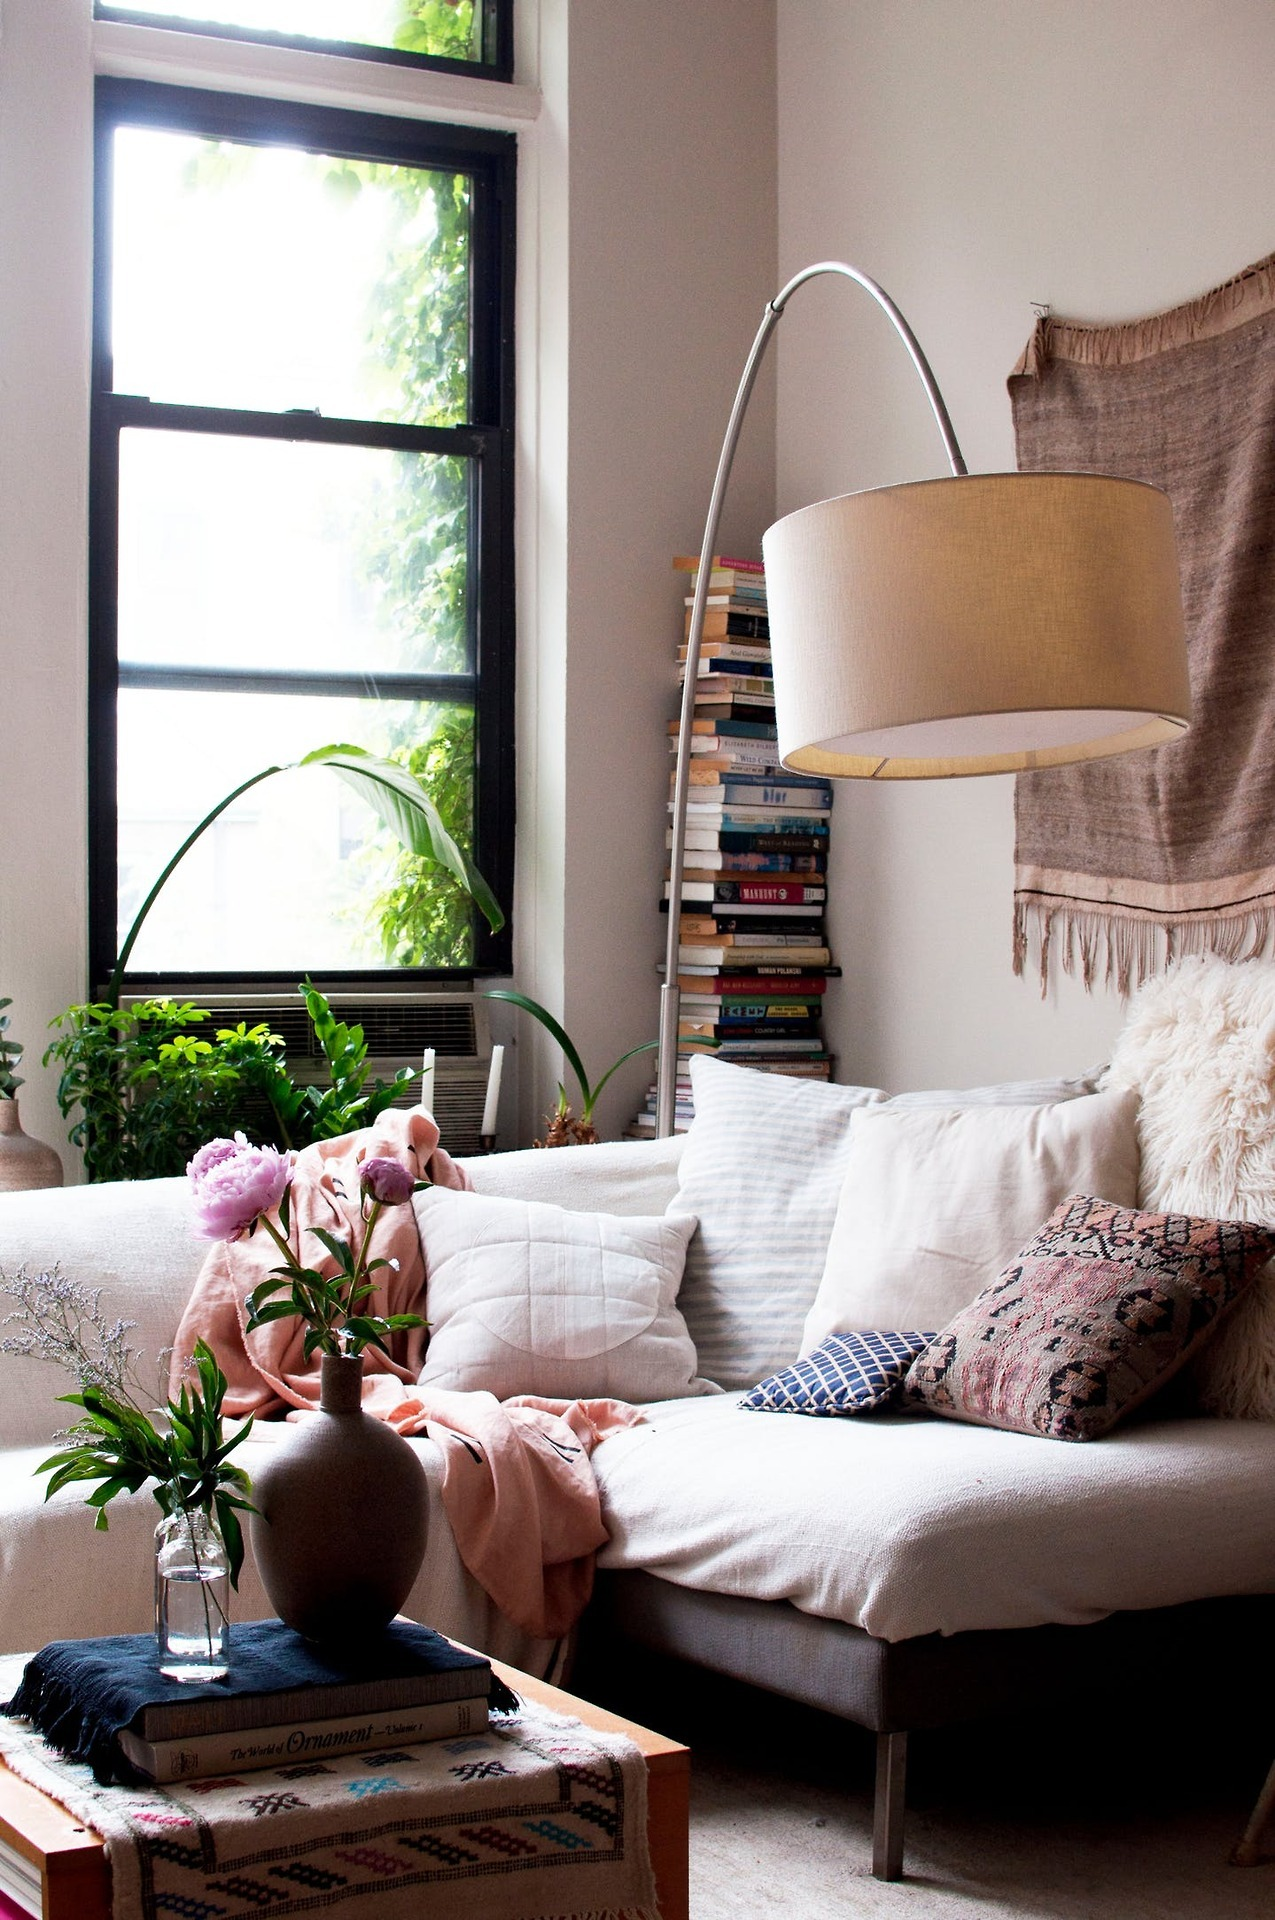 A dreamy bohemian Brooklyn studio apartment - Daily Dream ...